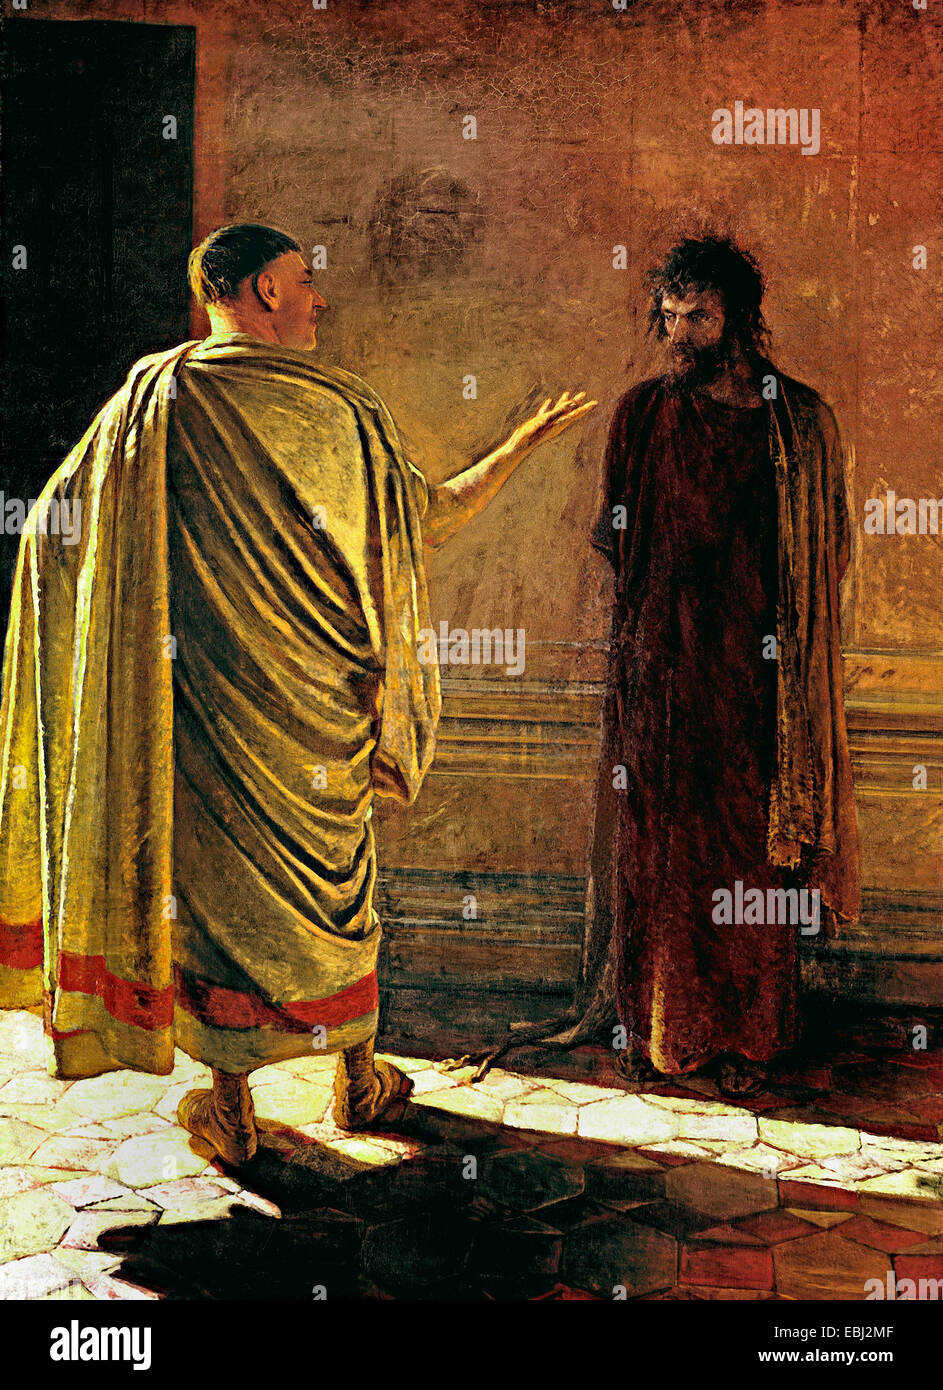 Nikolai Ge, 'What is truth?' Christ and Pilate 1890 Oil on canvas. Tretyakov Gallery, Moscow, Russia. - Stock Image